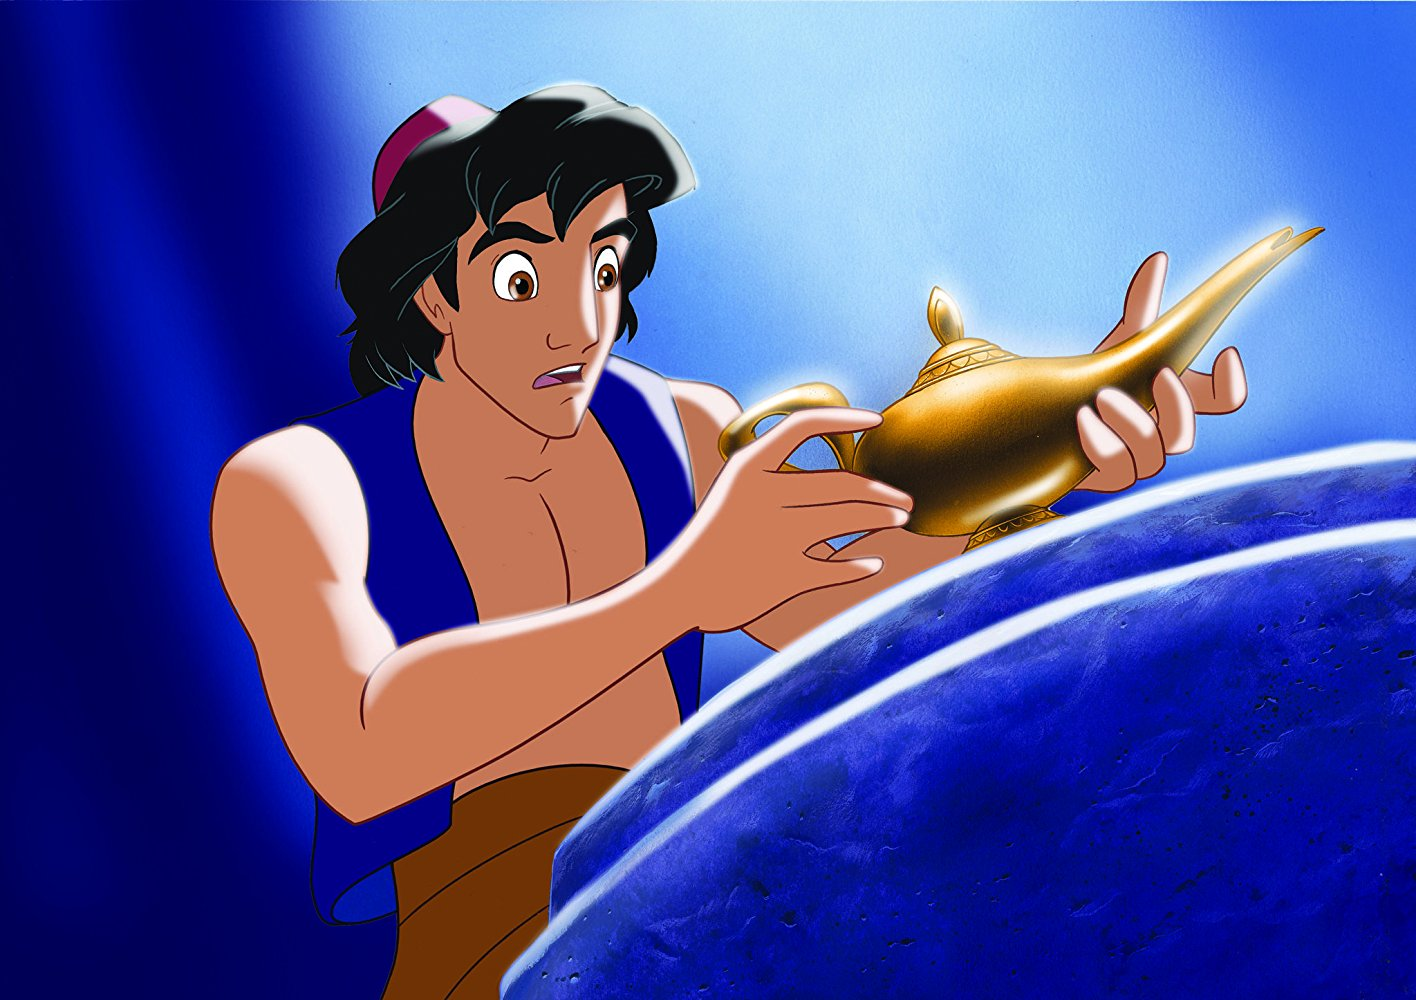 Aladdin (voiced by Scott Weinger) picks up the lamp in Aladdin (1992)